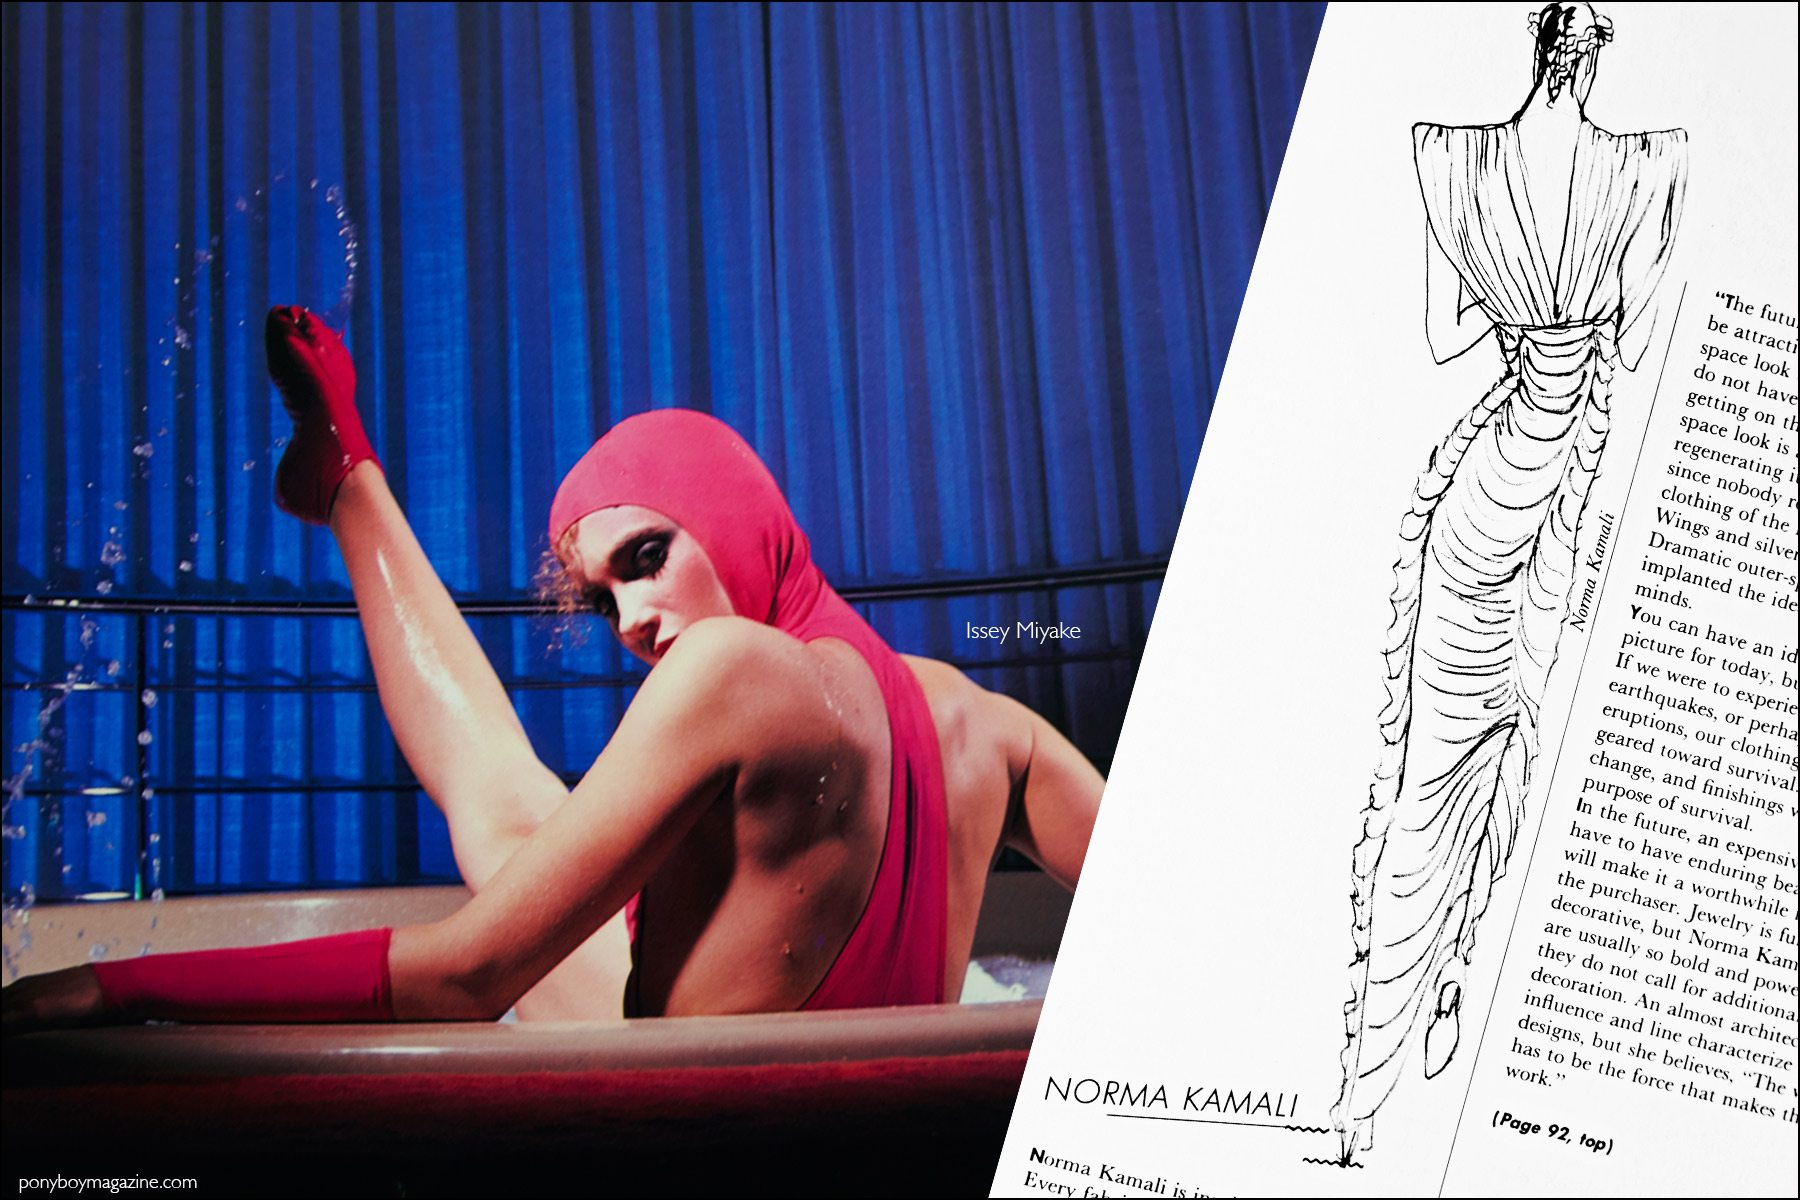 A Issey Miyake design and Norma Kamali sketch that is featured in the book by Lucille Khornak, Fashion: 2001. Ponyboy magazine NY.